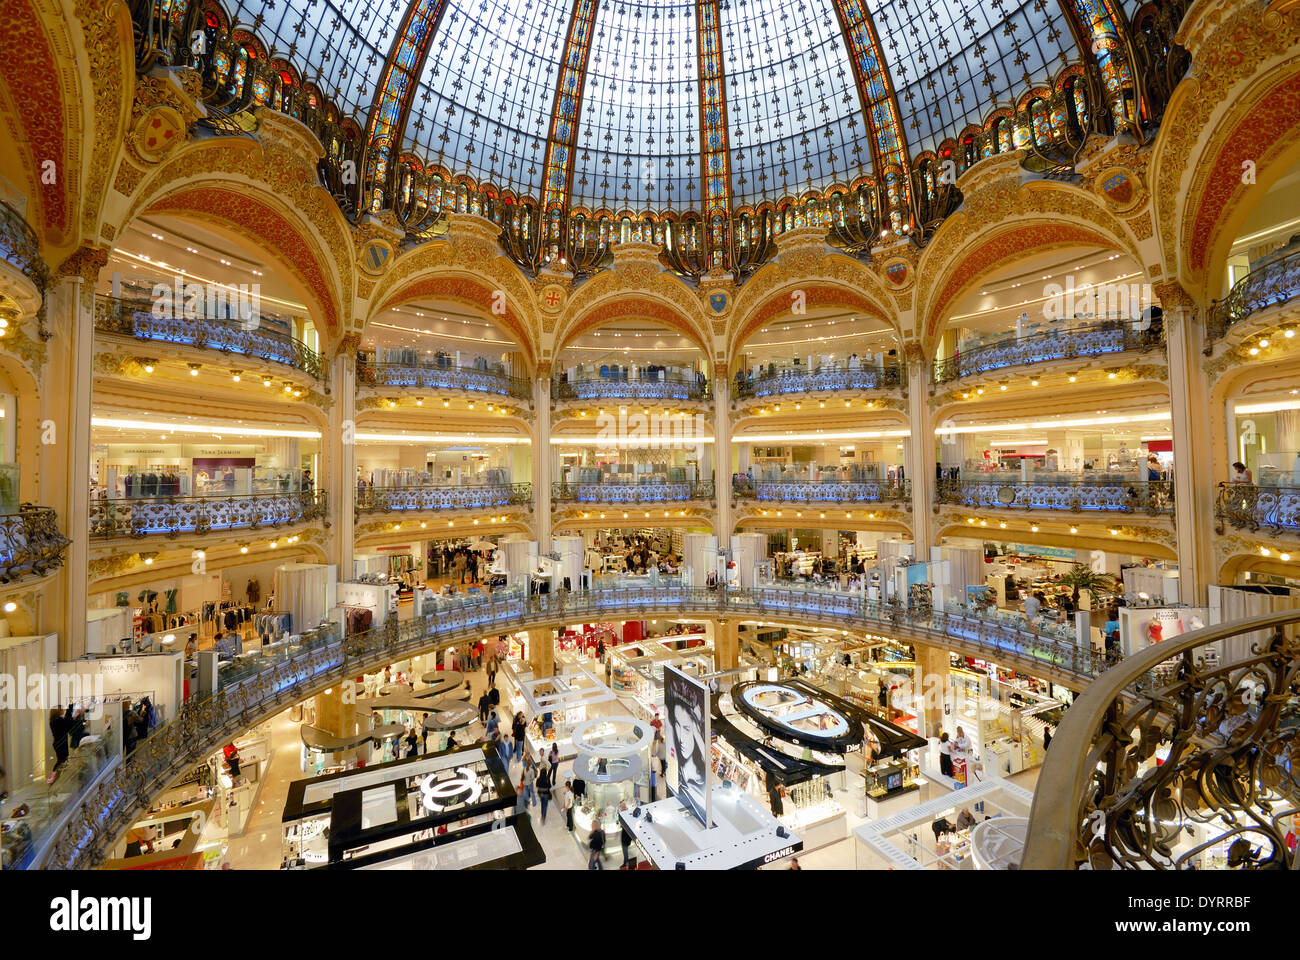 Préférence Galeries Lafayette, shopping mall, Paris, France Stock Photo  SJ14